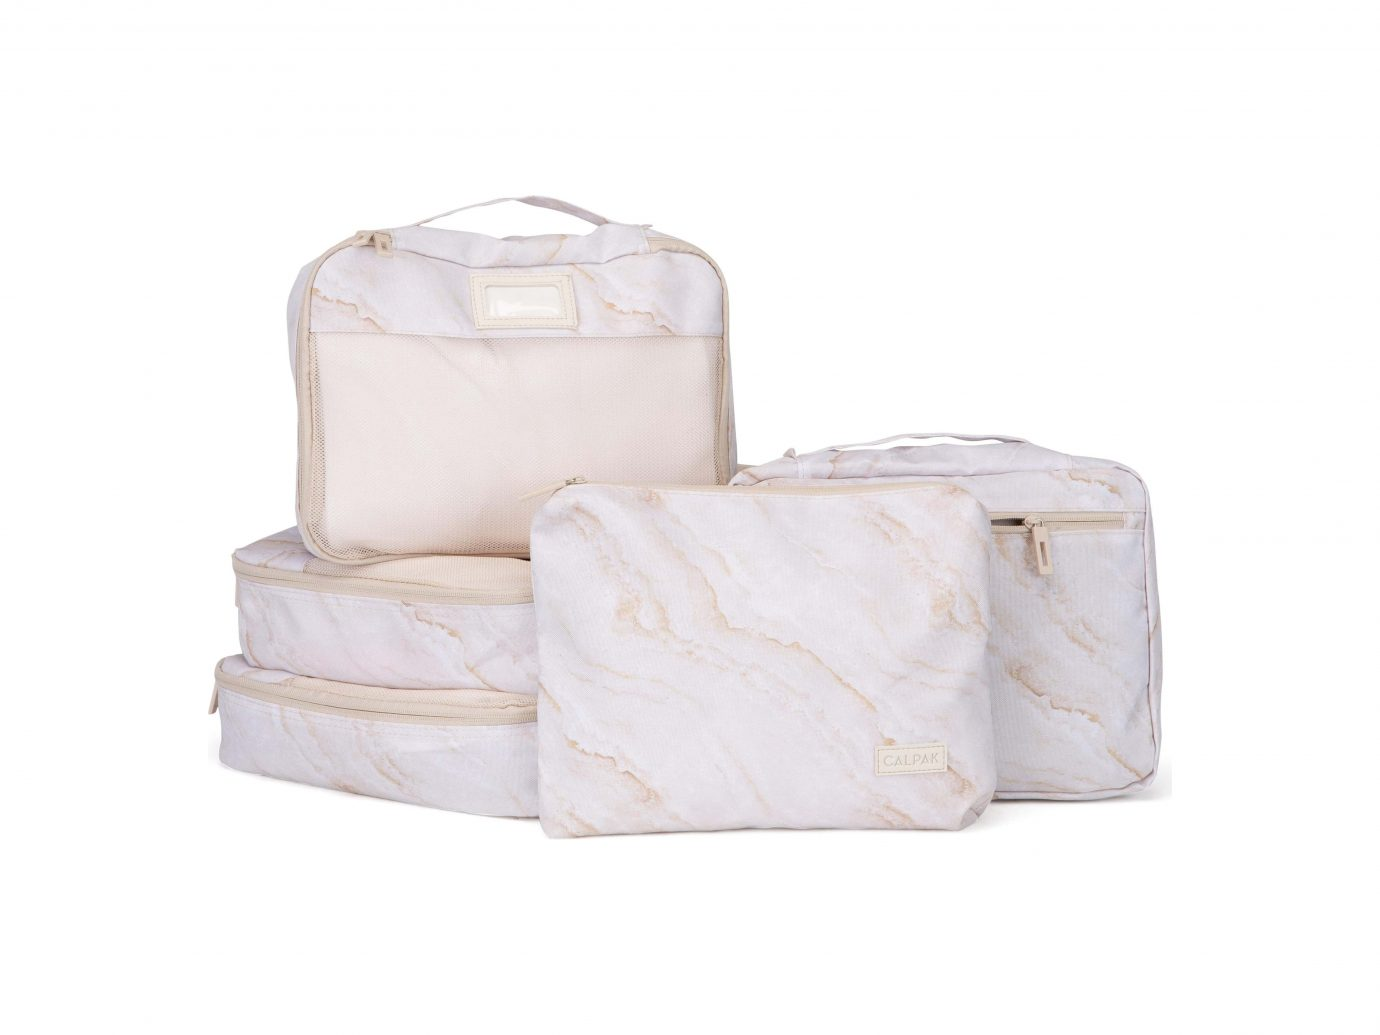 5-Piece Packing Cube Set